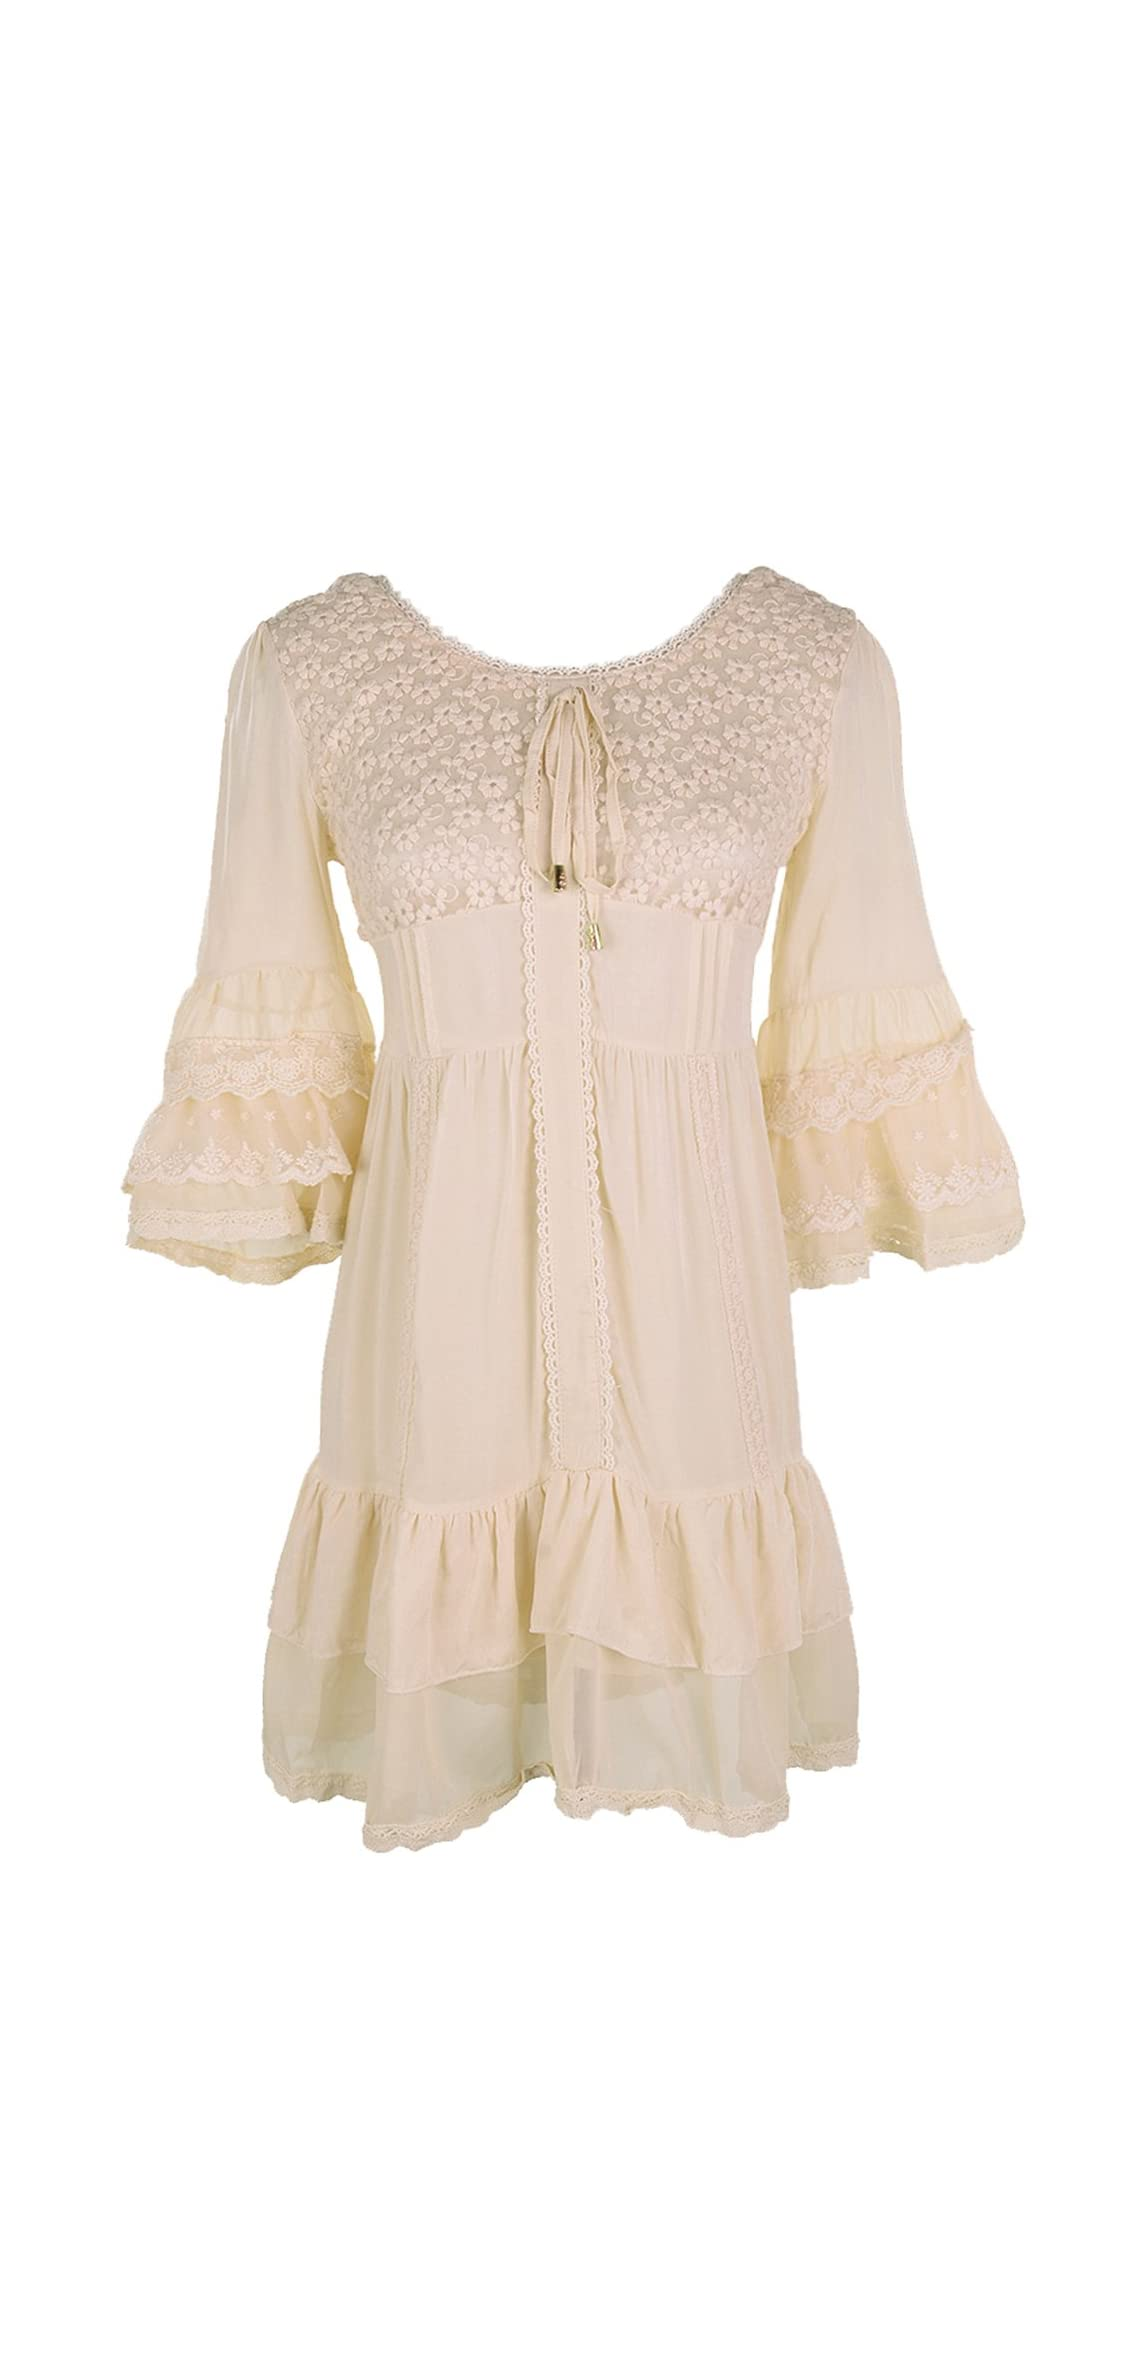 Womens Boho Peasant Floral Lace Ruffle Hem Bell Sleeve